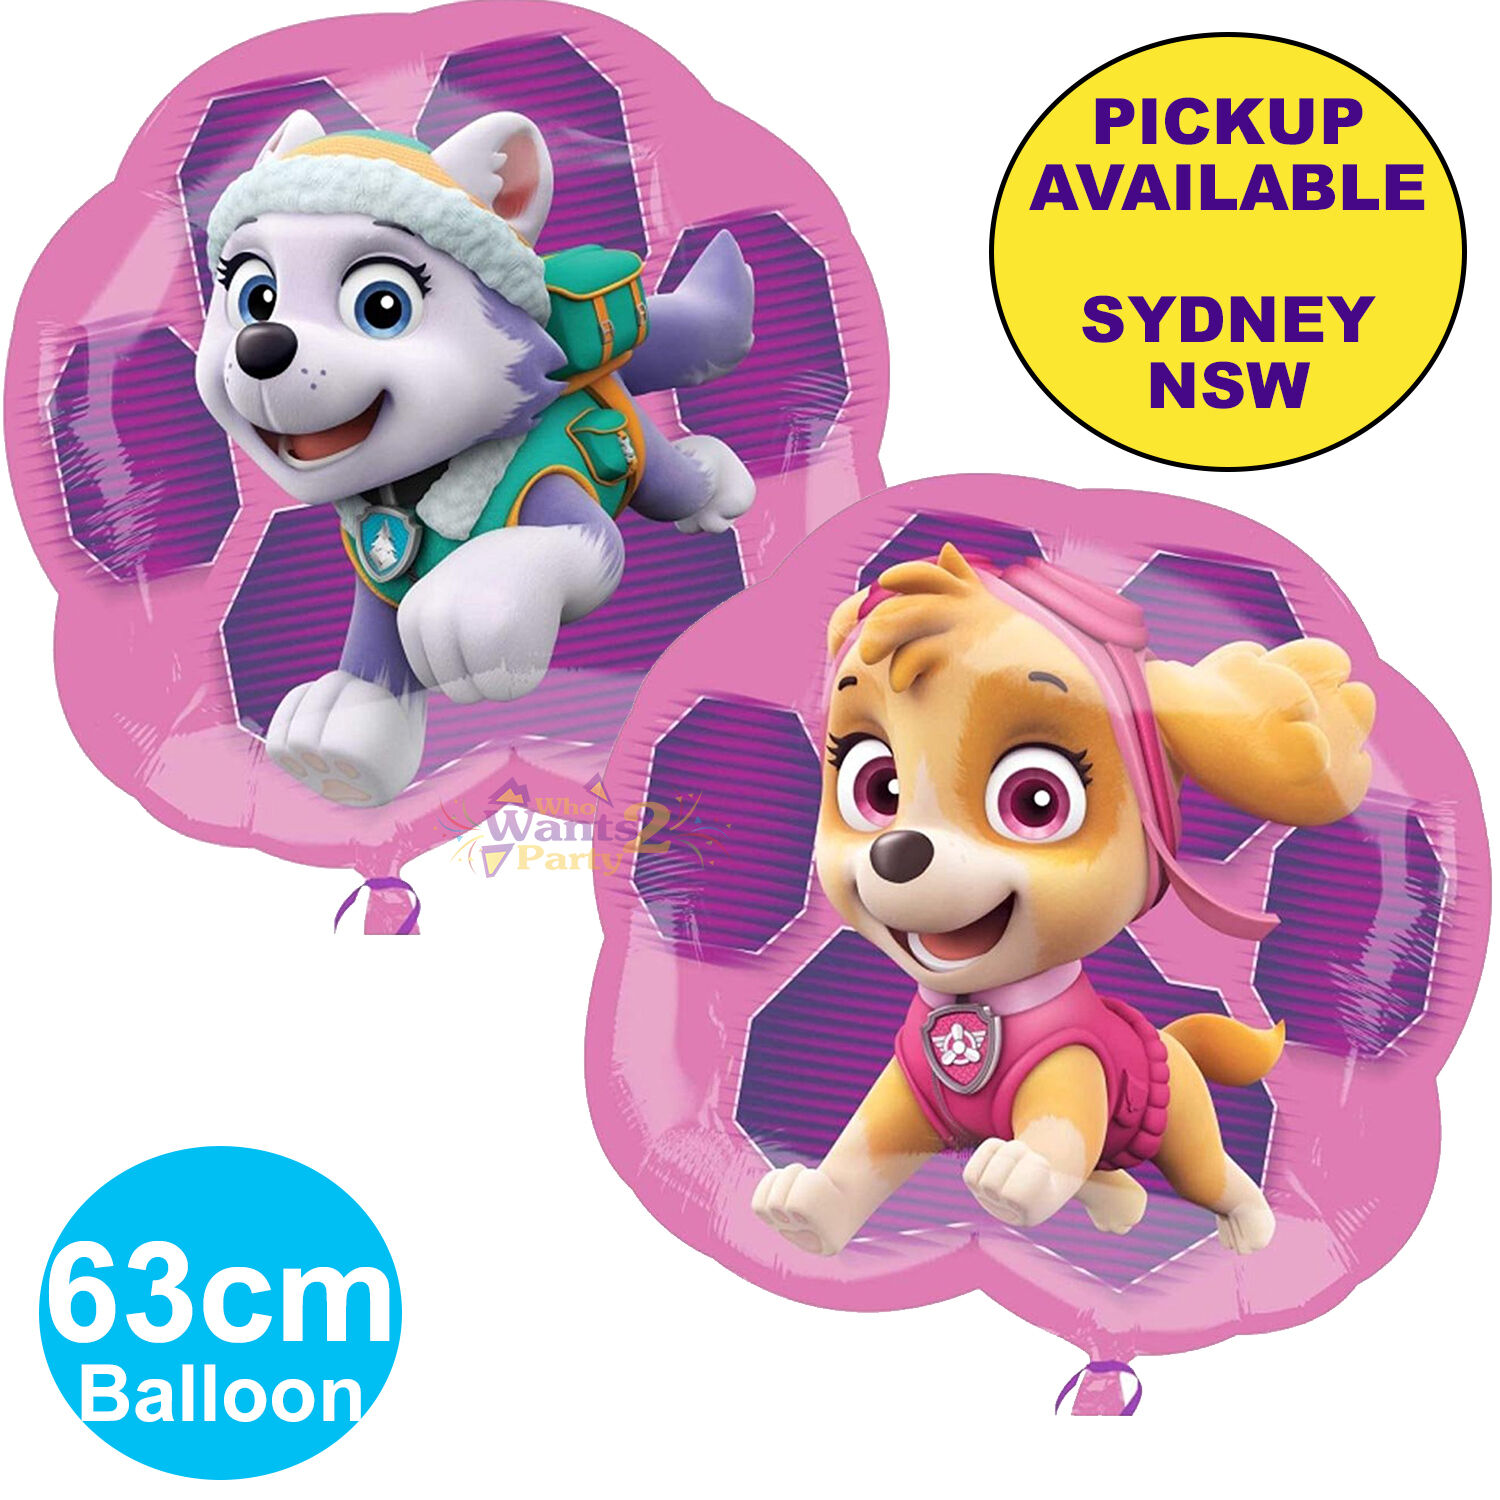 PAW PATROL PINK GIRLS PARTY SUPPLIES BALLOON SKYE EVEREST BIRTHDAY DECORATIONS